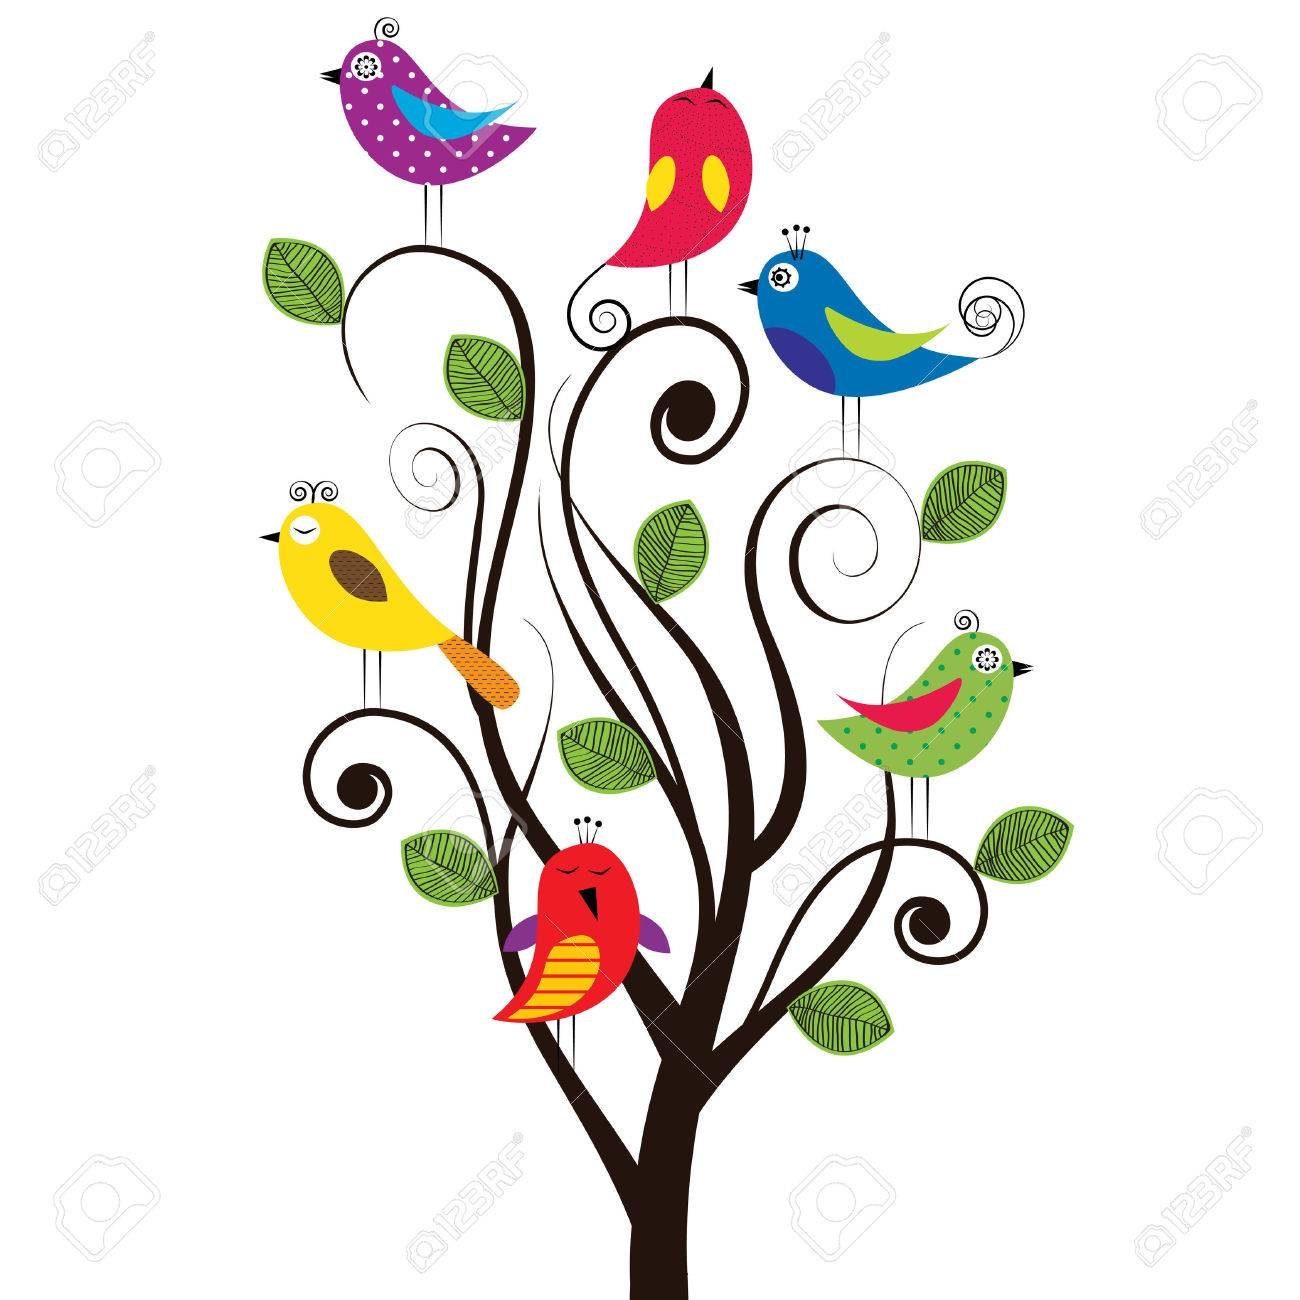 spring tree with colorful and funny birds royalty free cliparts rh 123rf com spring vector images spring vector art